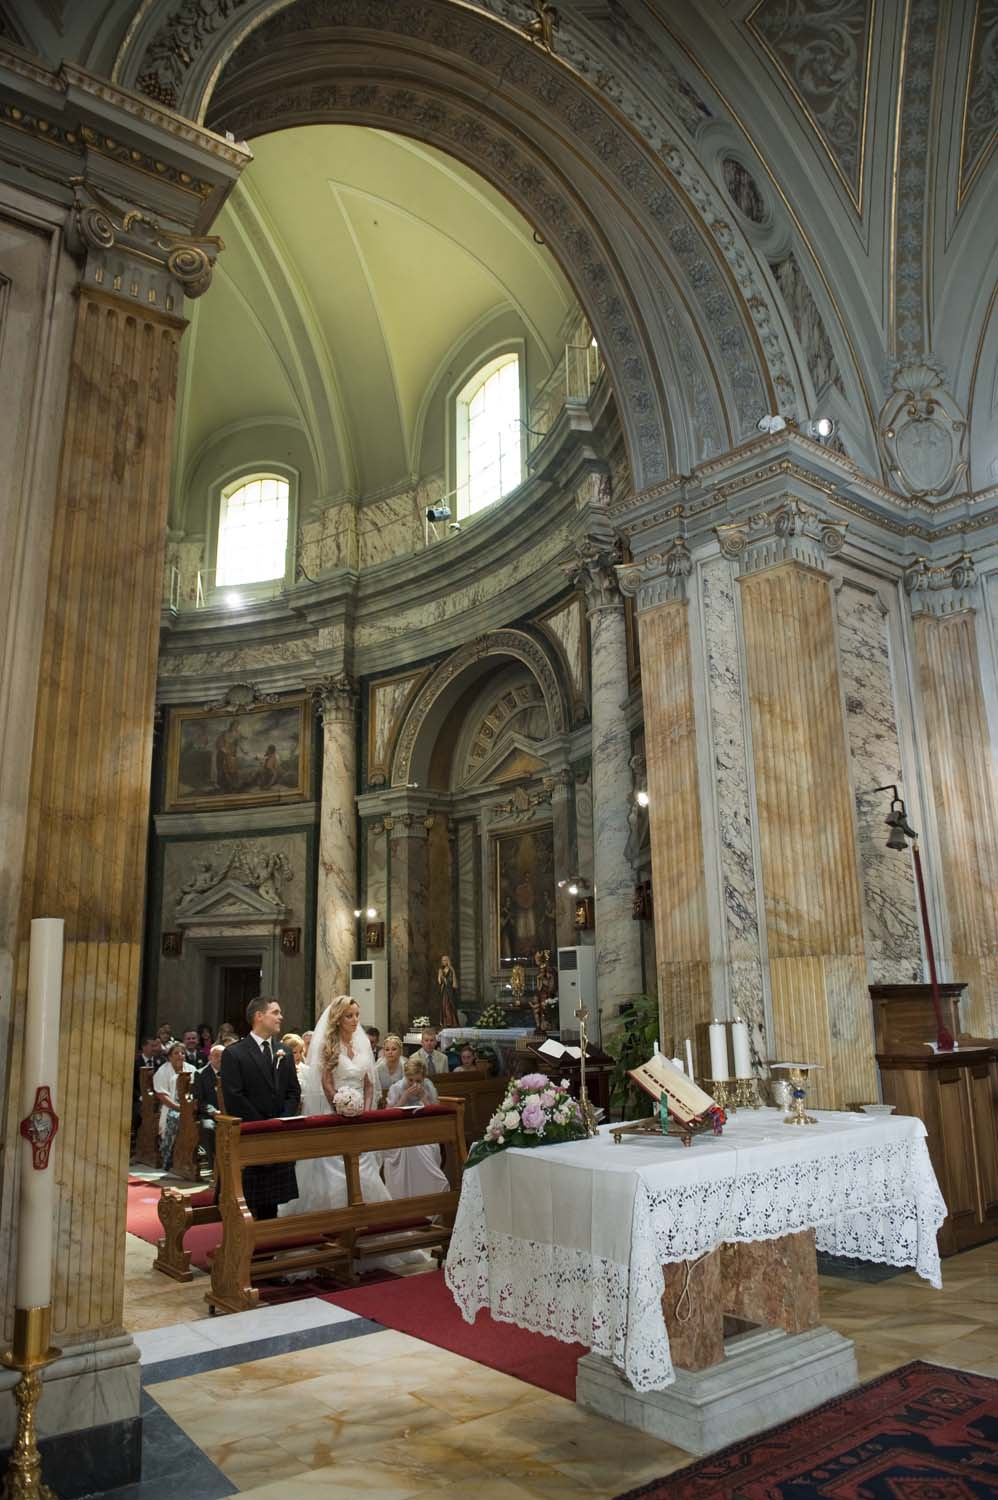 Catholic wedding ceremony in a baroque church in Vatican Rome